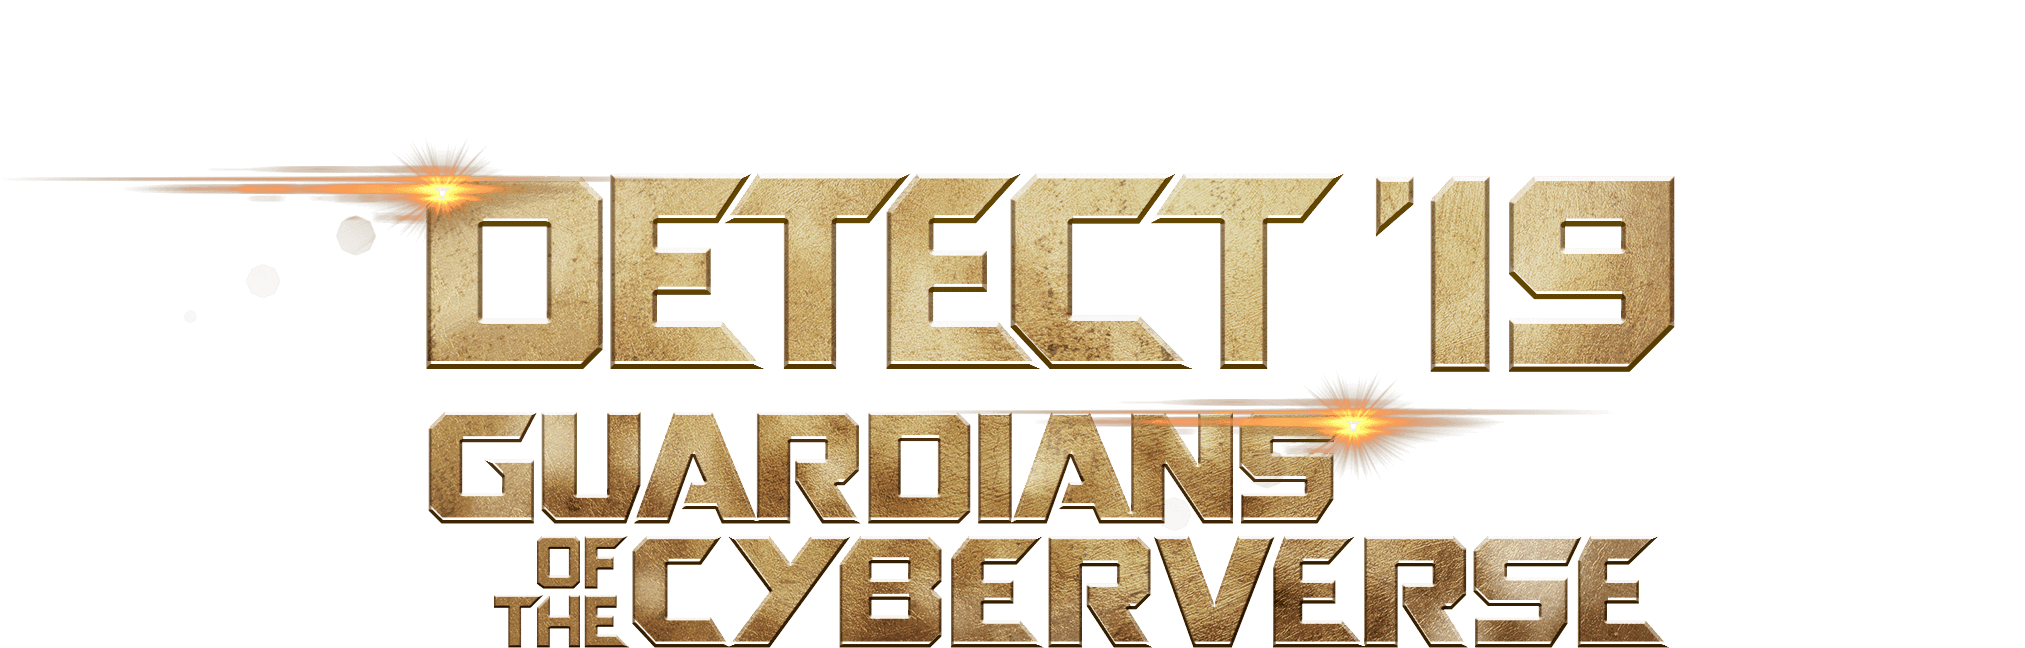 Detect '19 Guardians of the Cyberverse